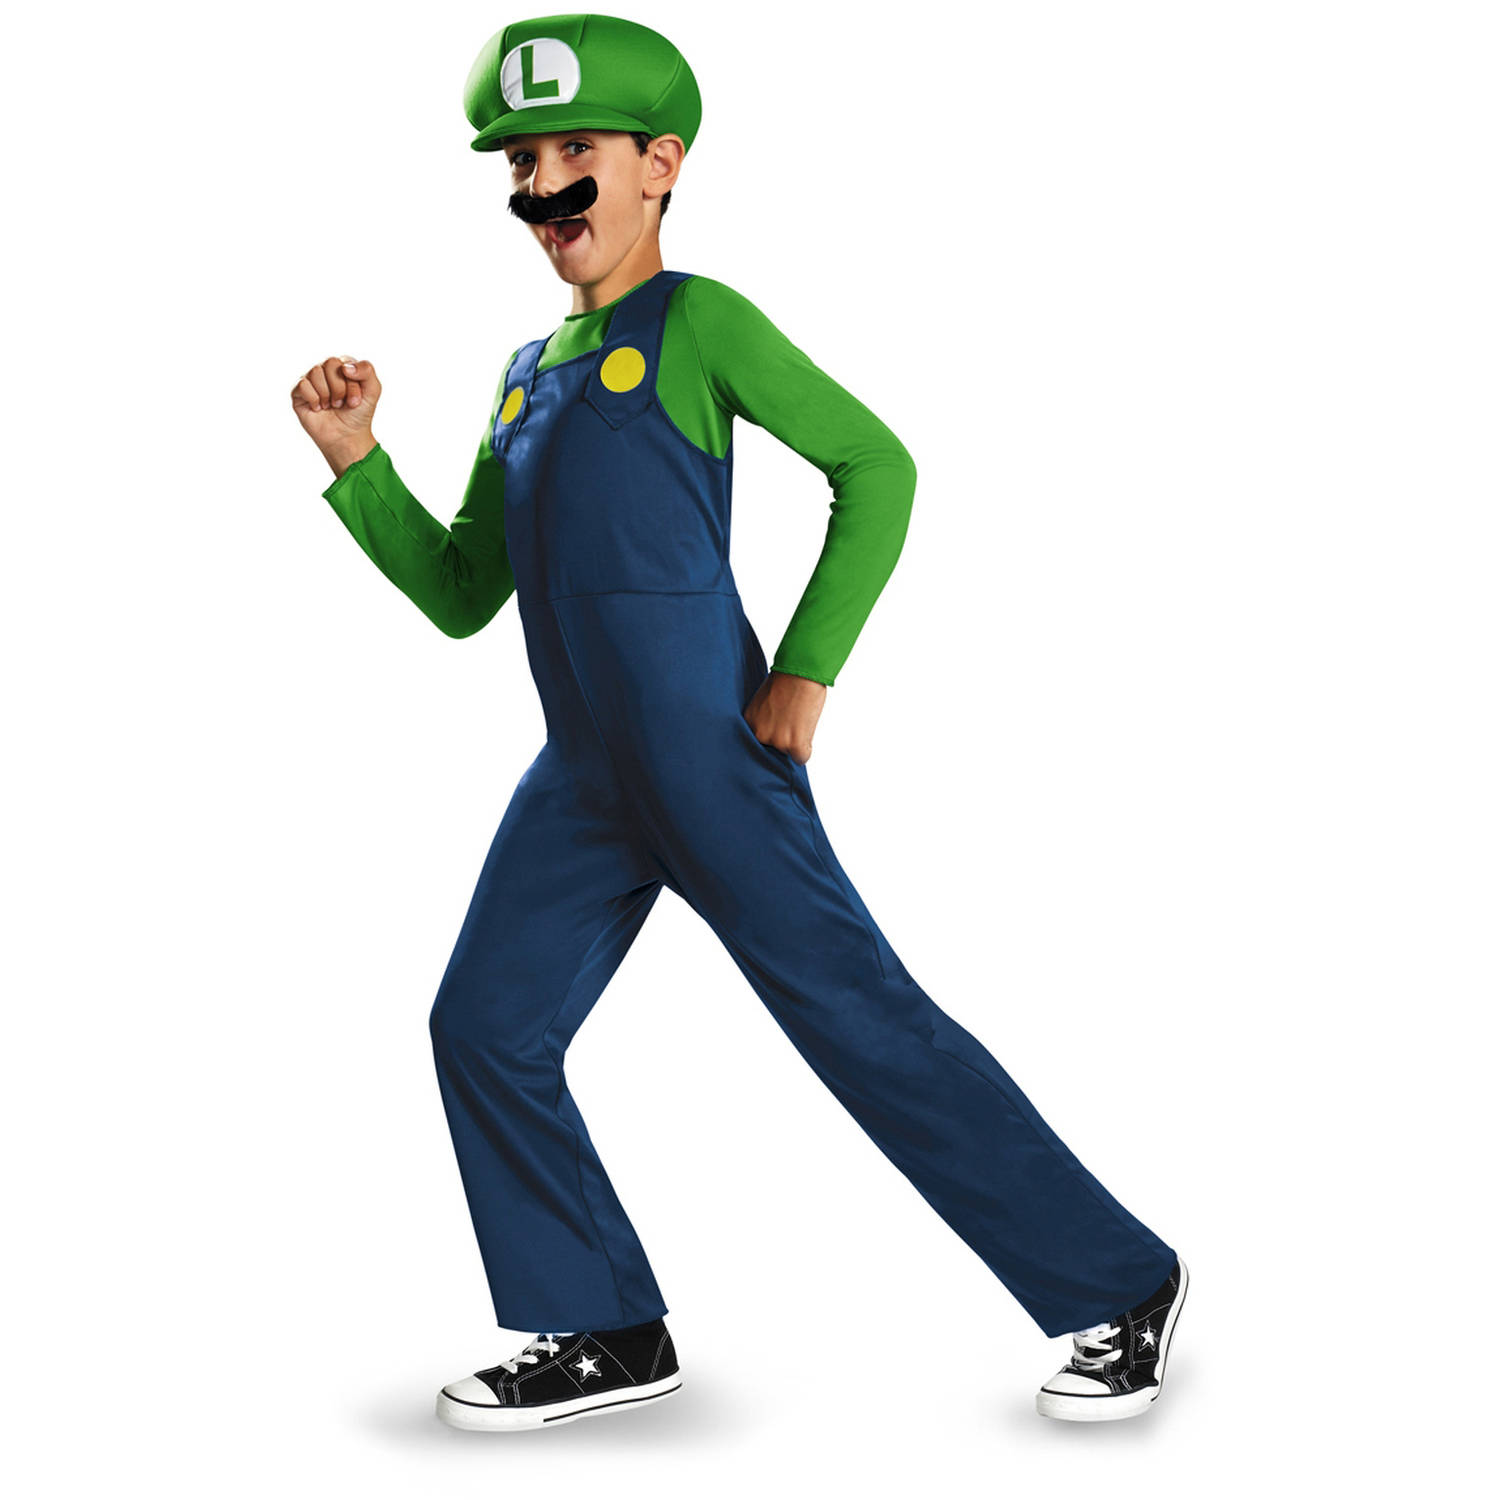 Super Mario Bros. Luigi Classic Child Halloween Costume